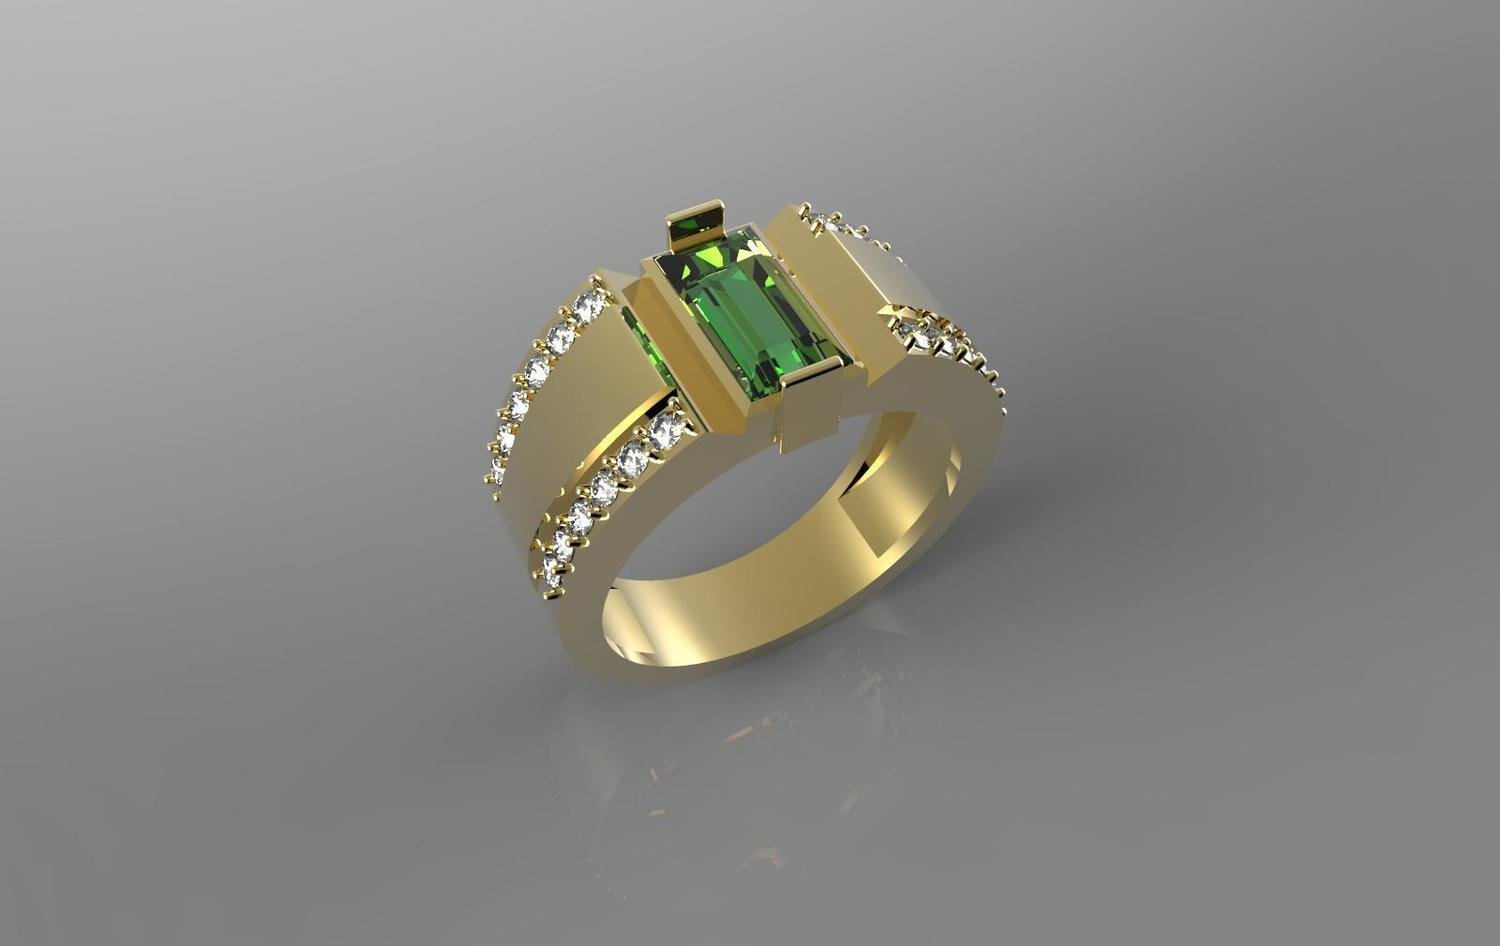 3D  CAD Model of Anniversary Ring with Emerald and Diamonds